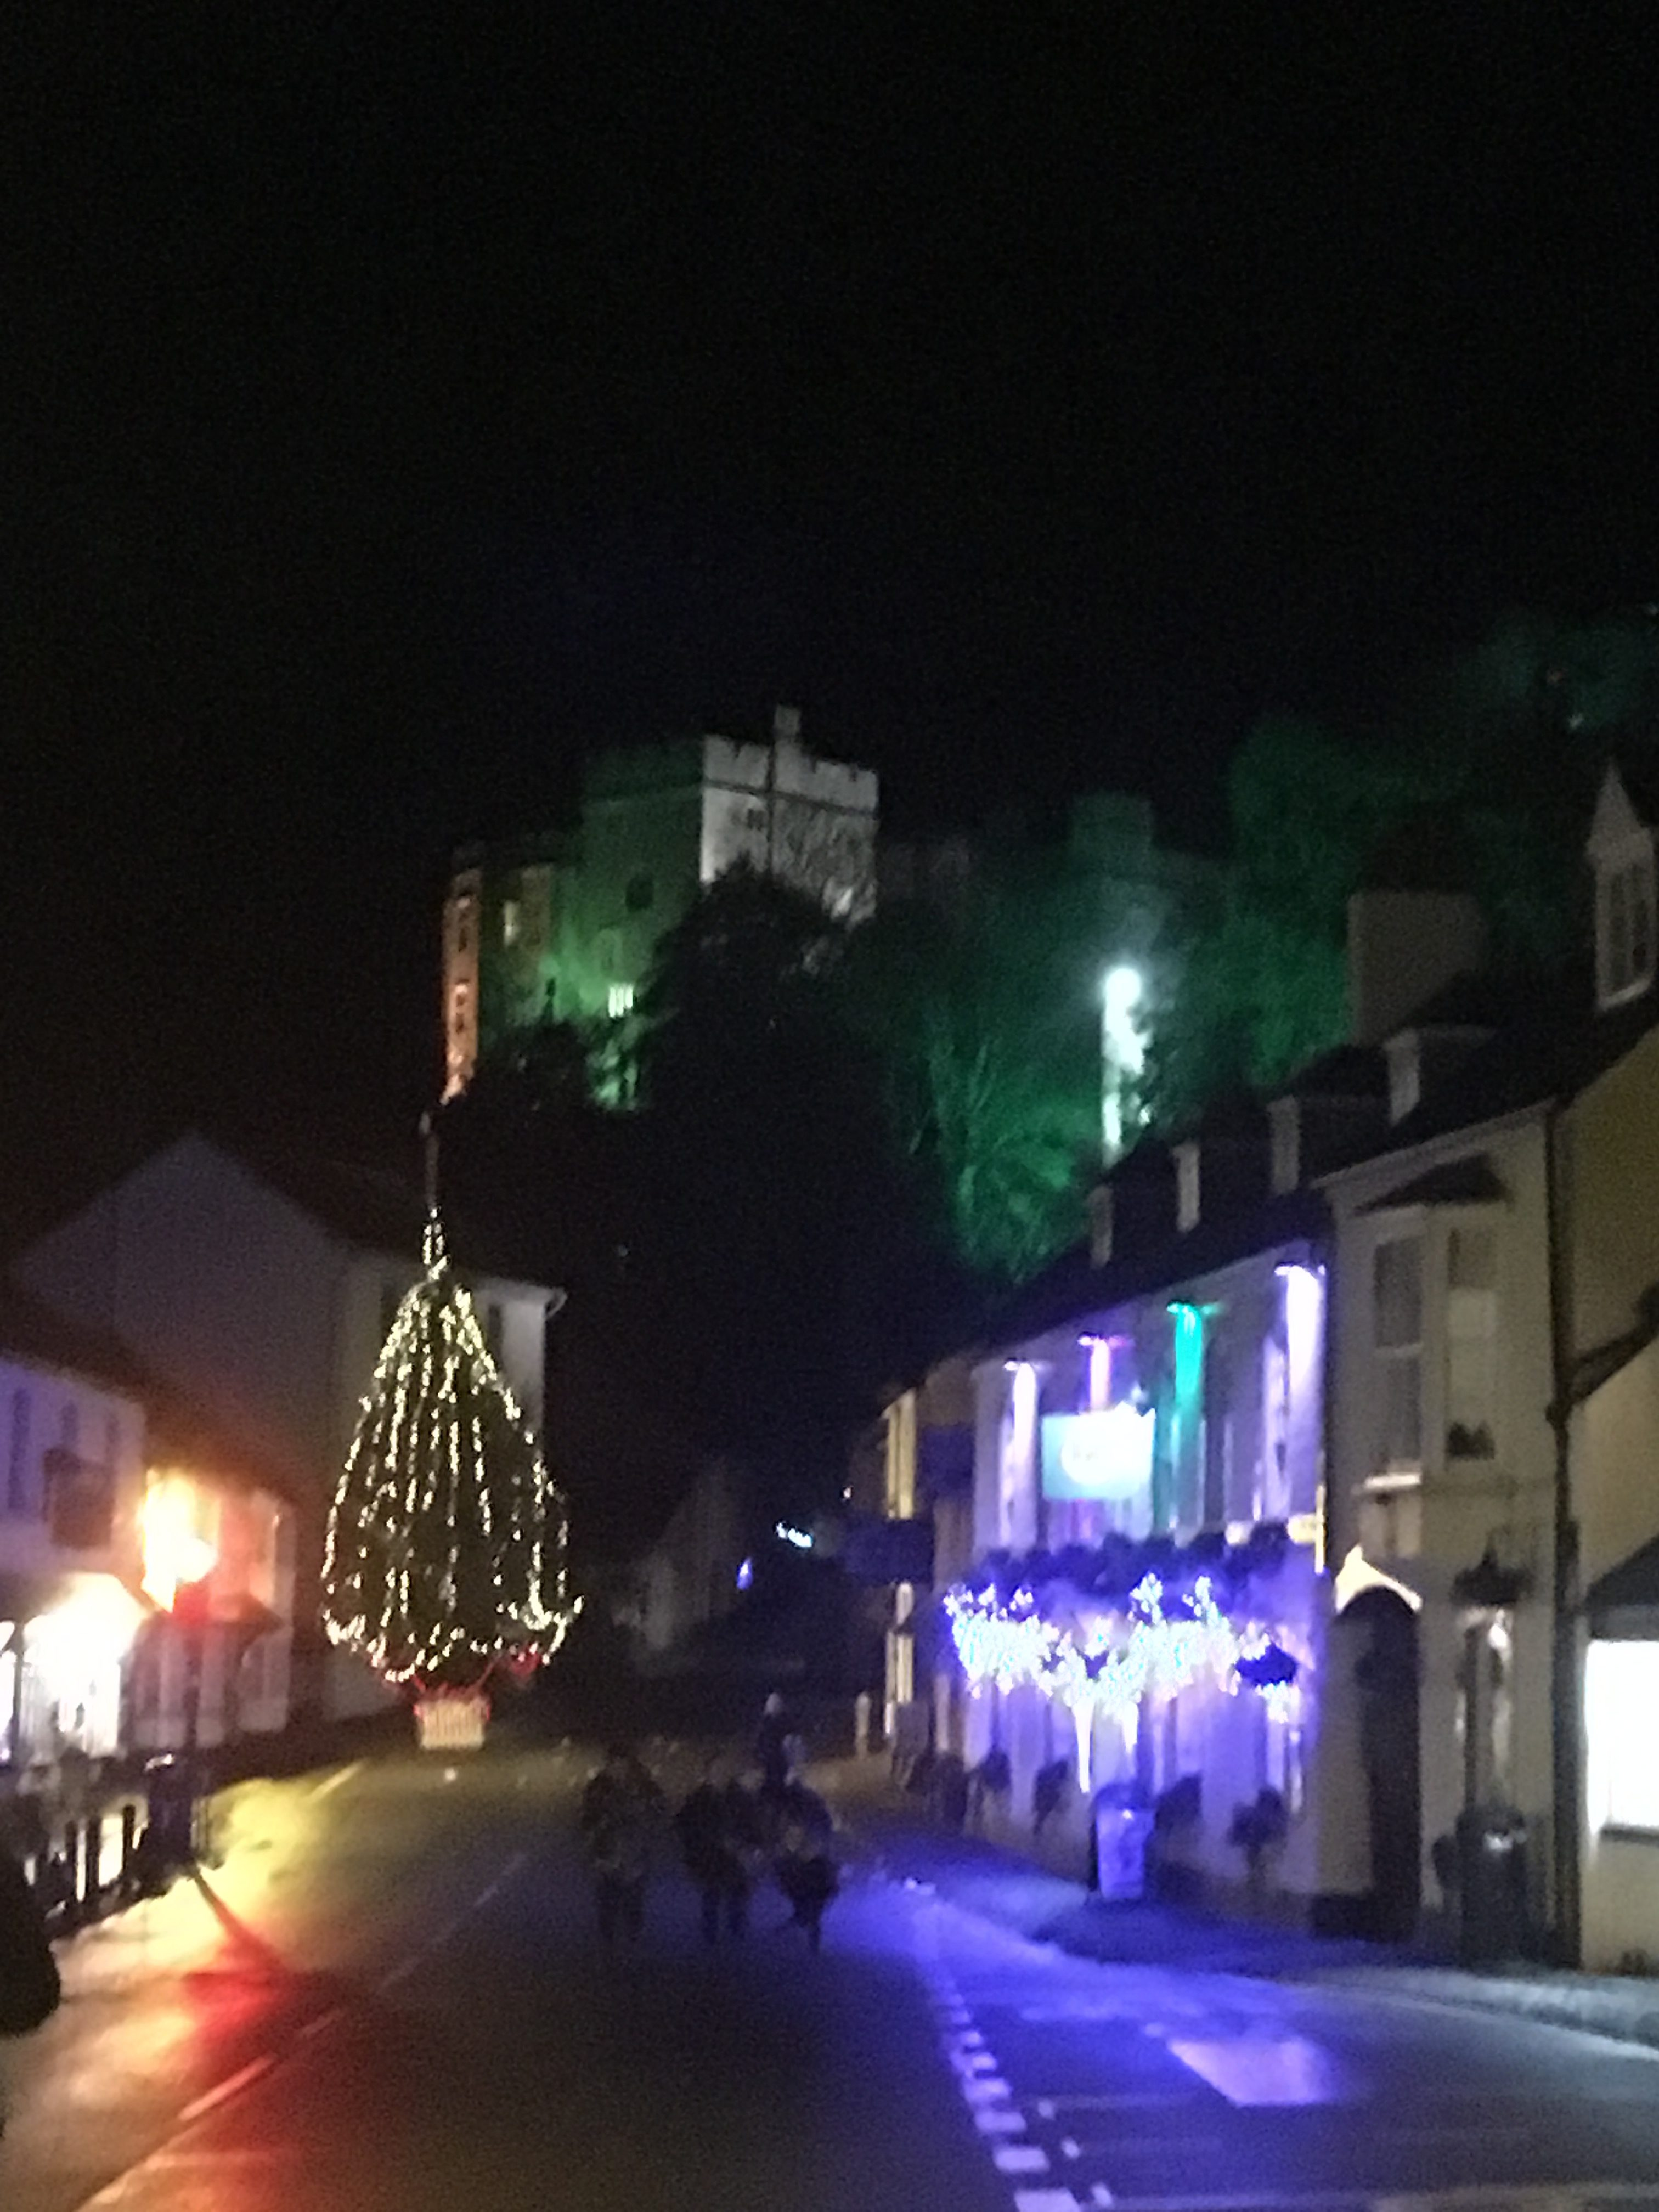 Dunster's annual Dunster by candlelight